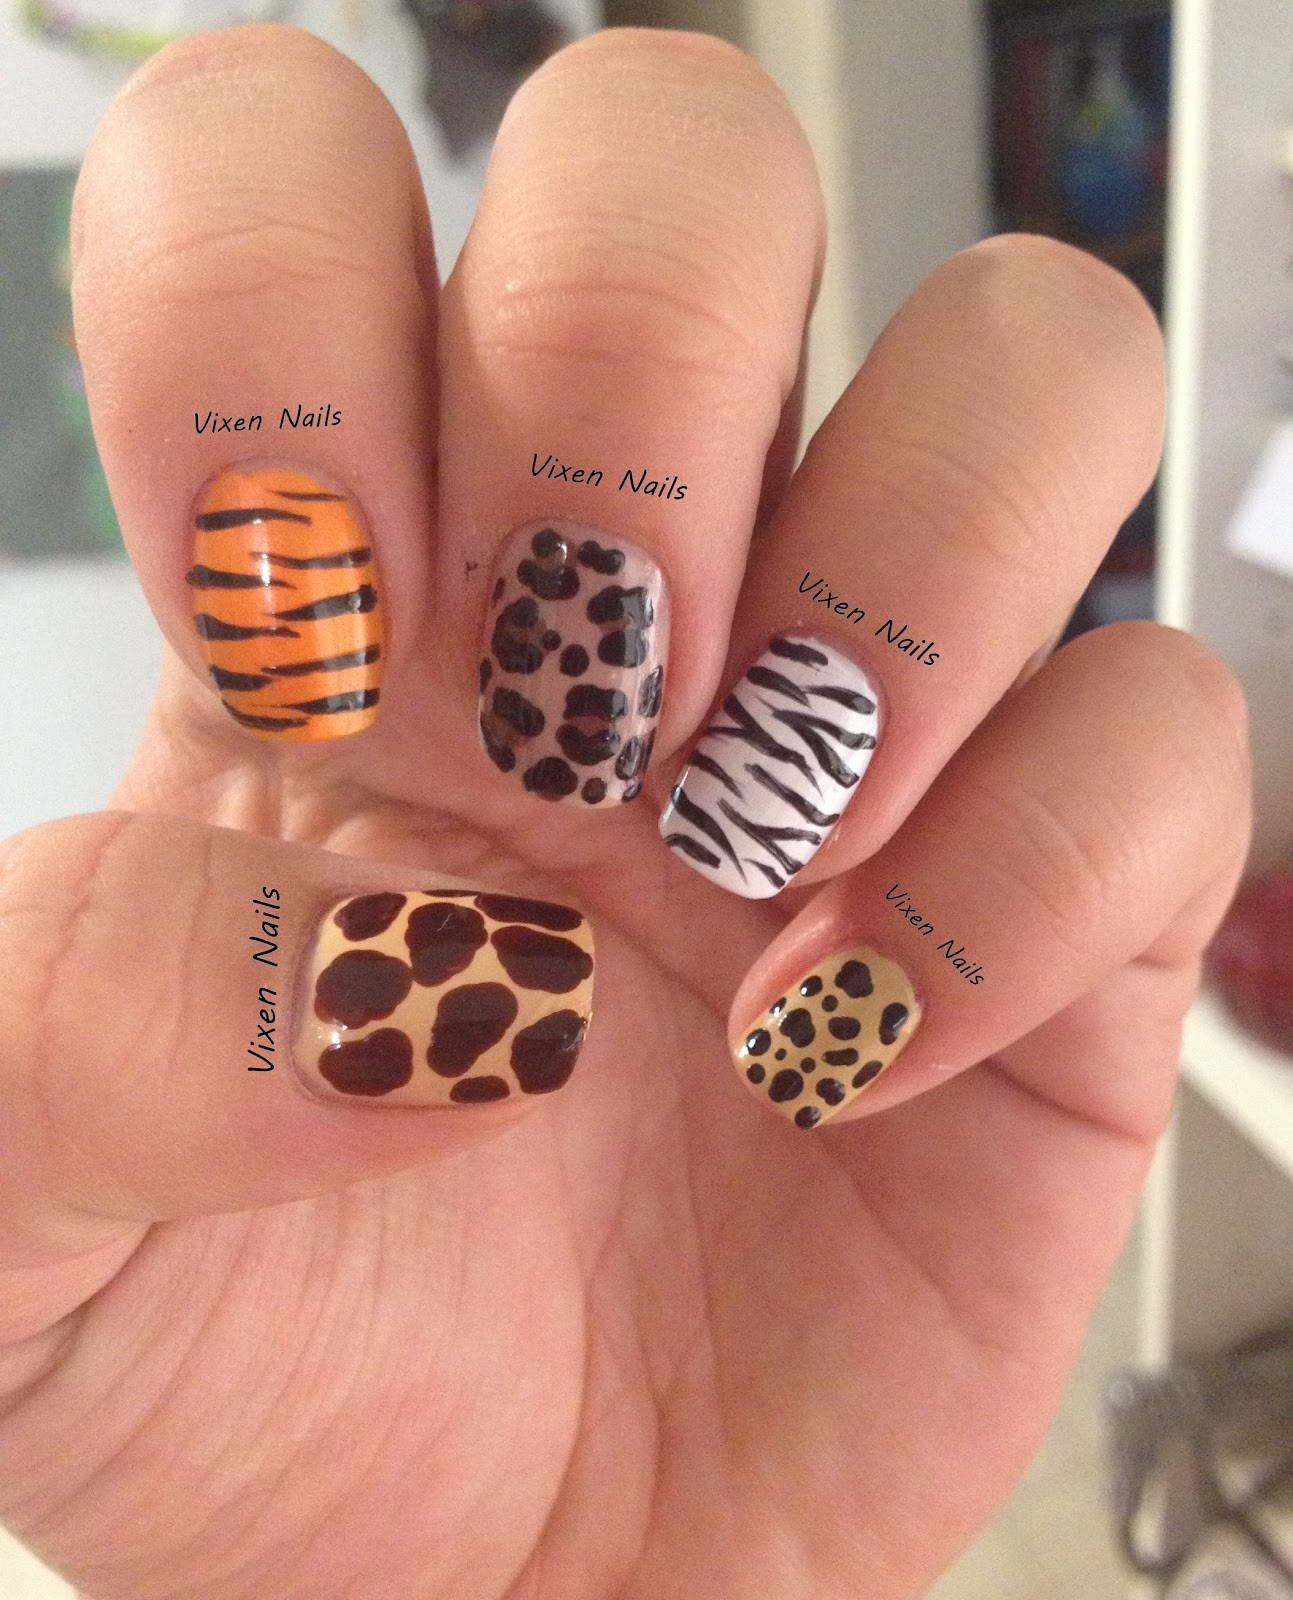 Nails by Nicole in Albuquerque New Mexico | Nails